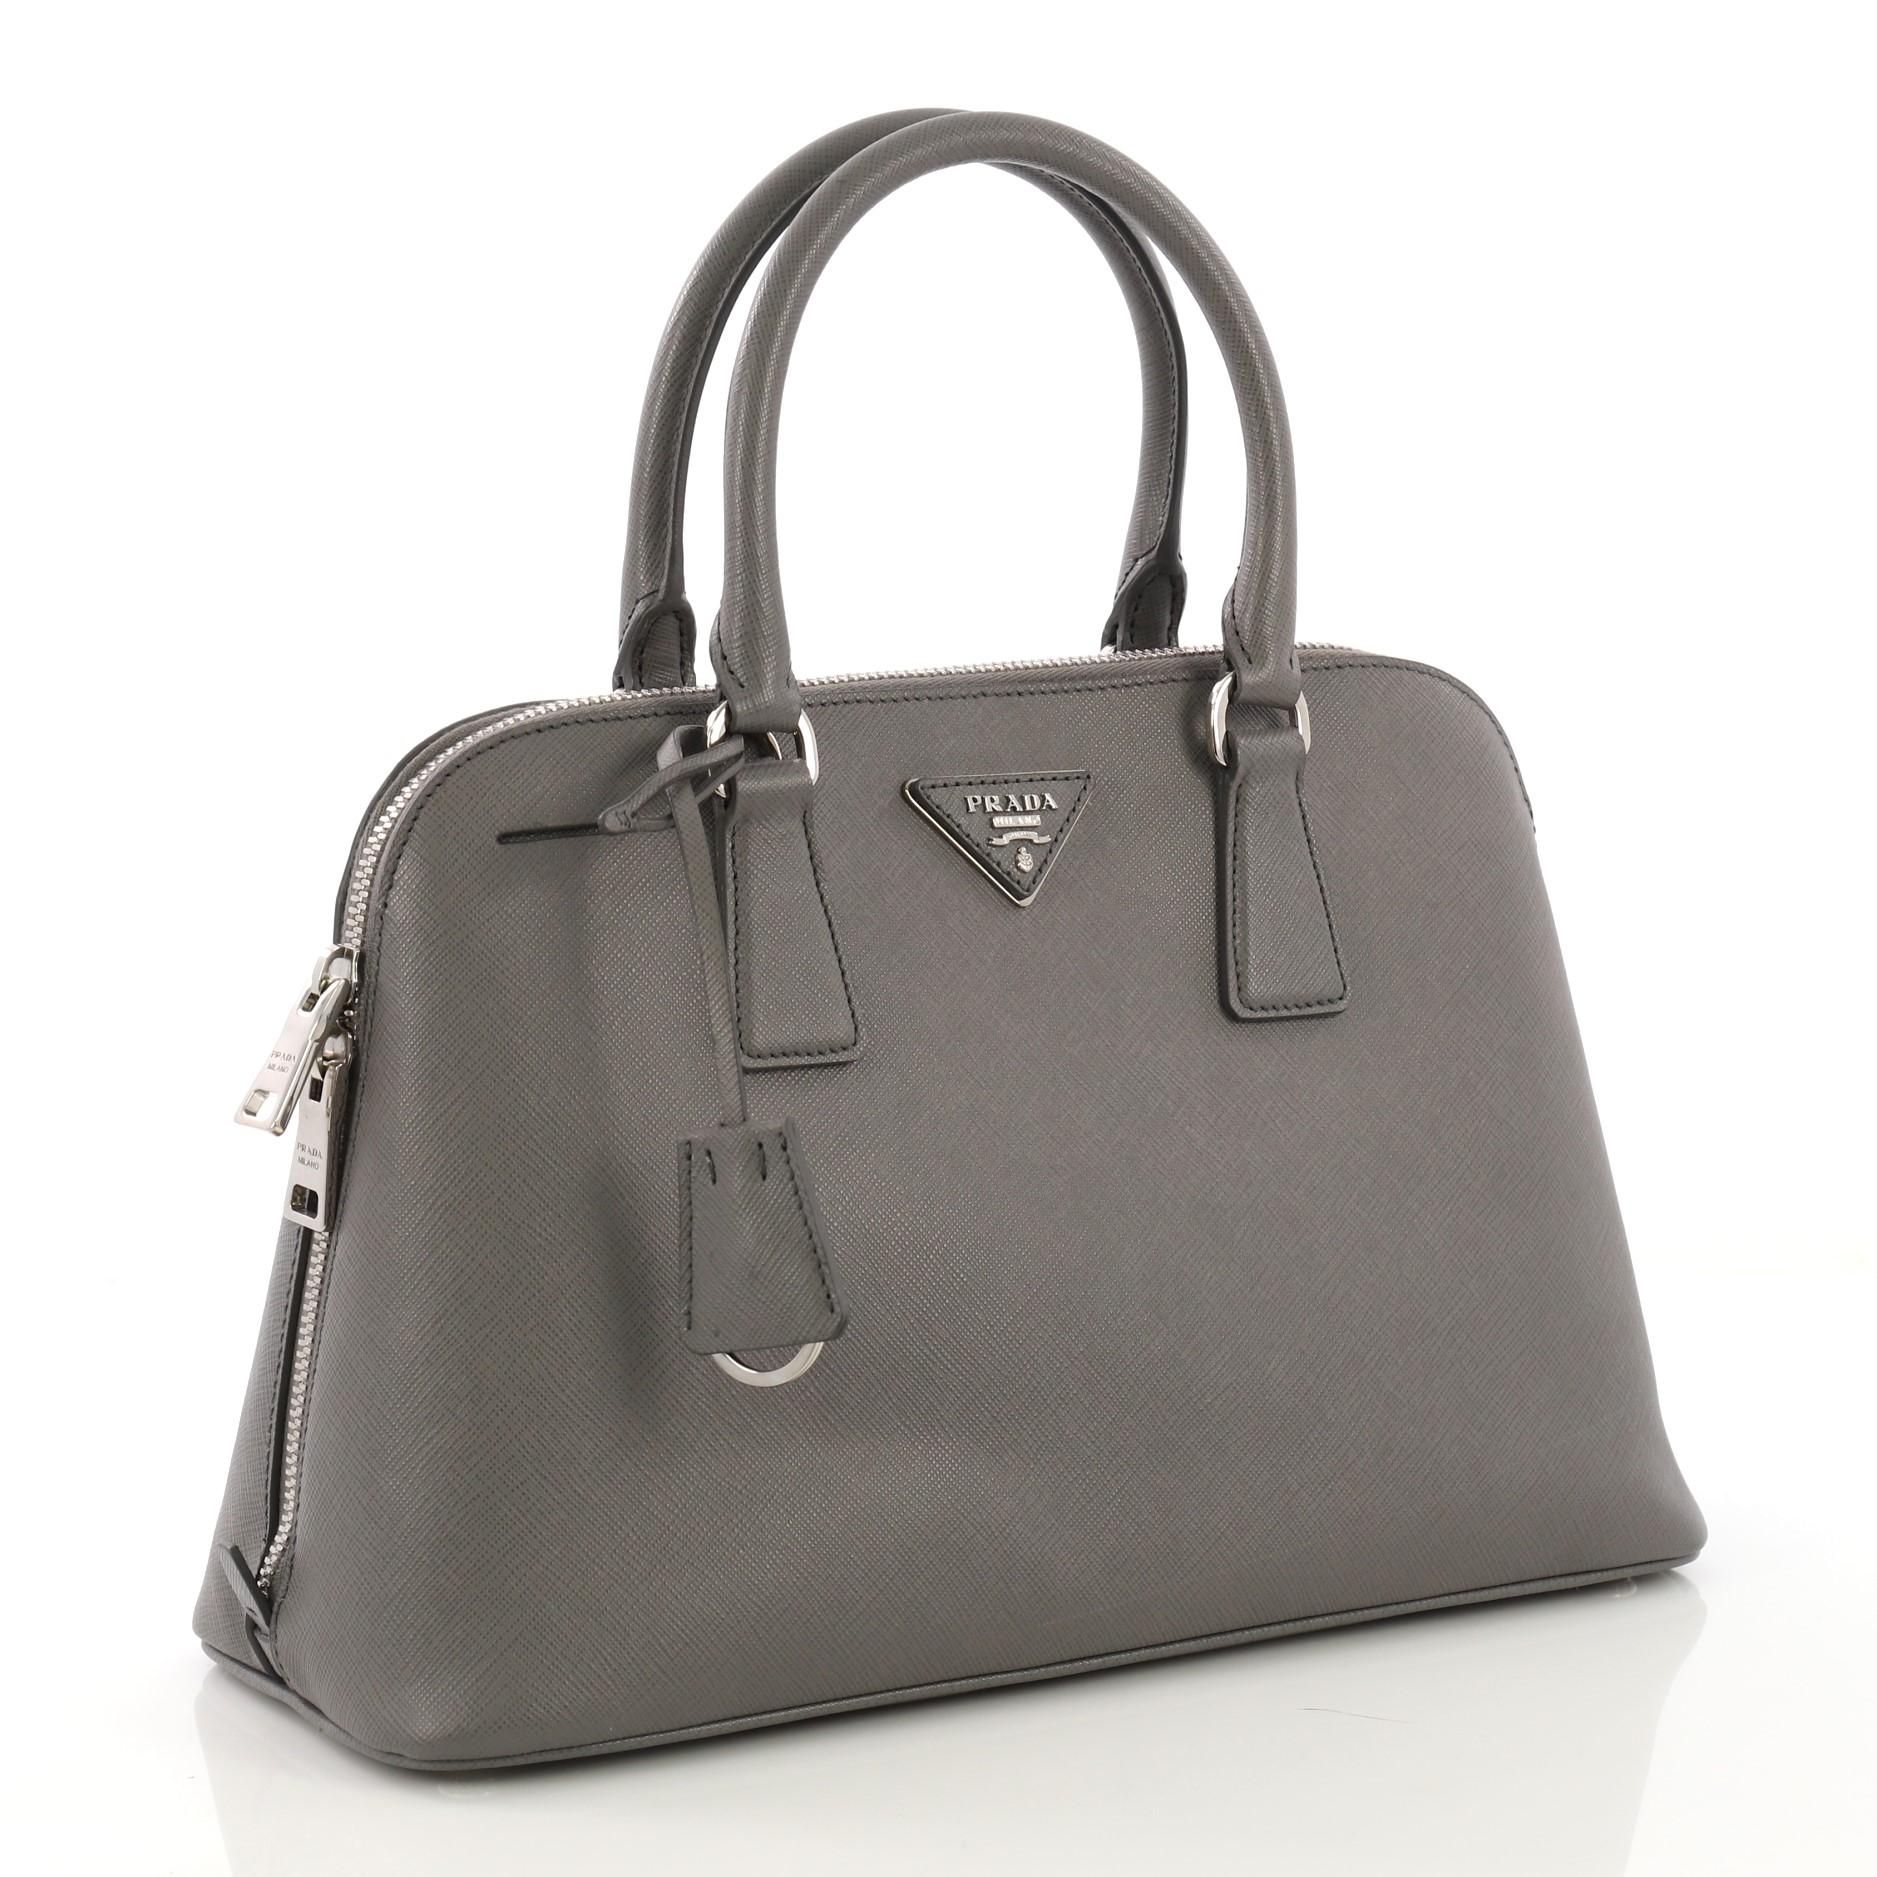 e56eb7ed65bd Prada Promenade Handbag Saffiano Leather Medium at 1stdibs